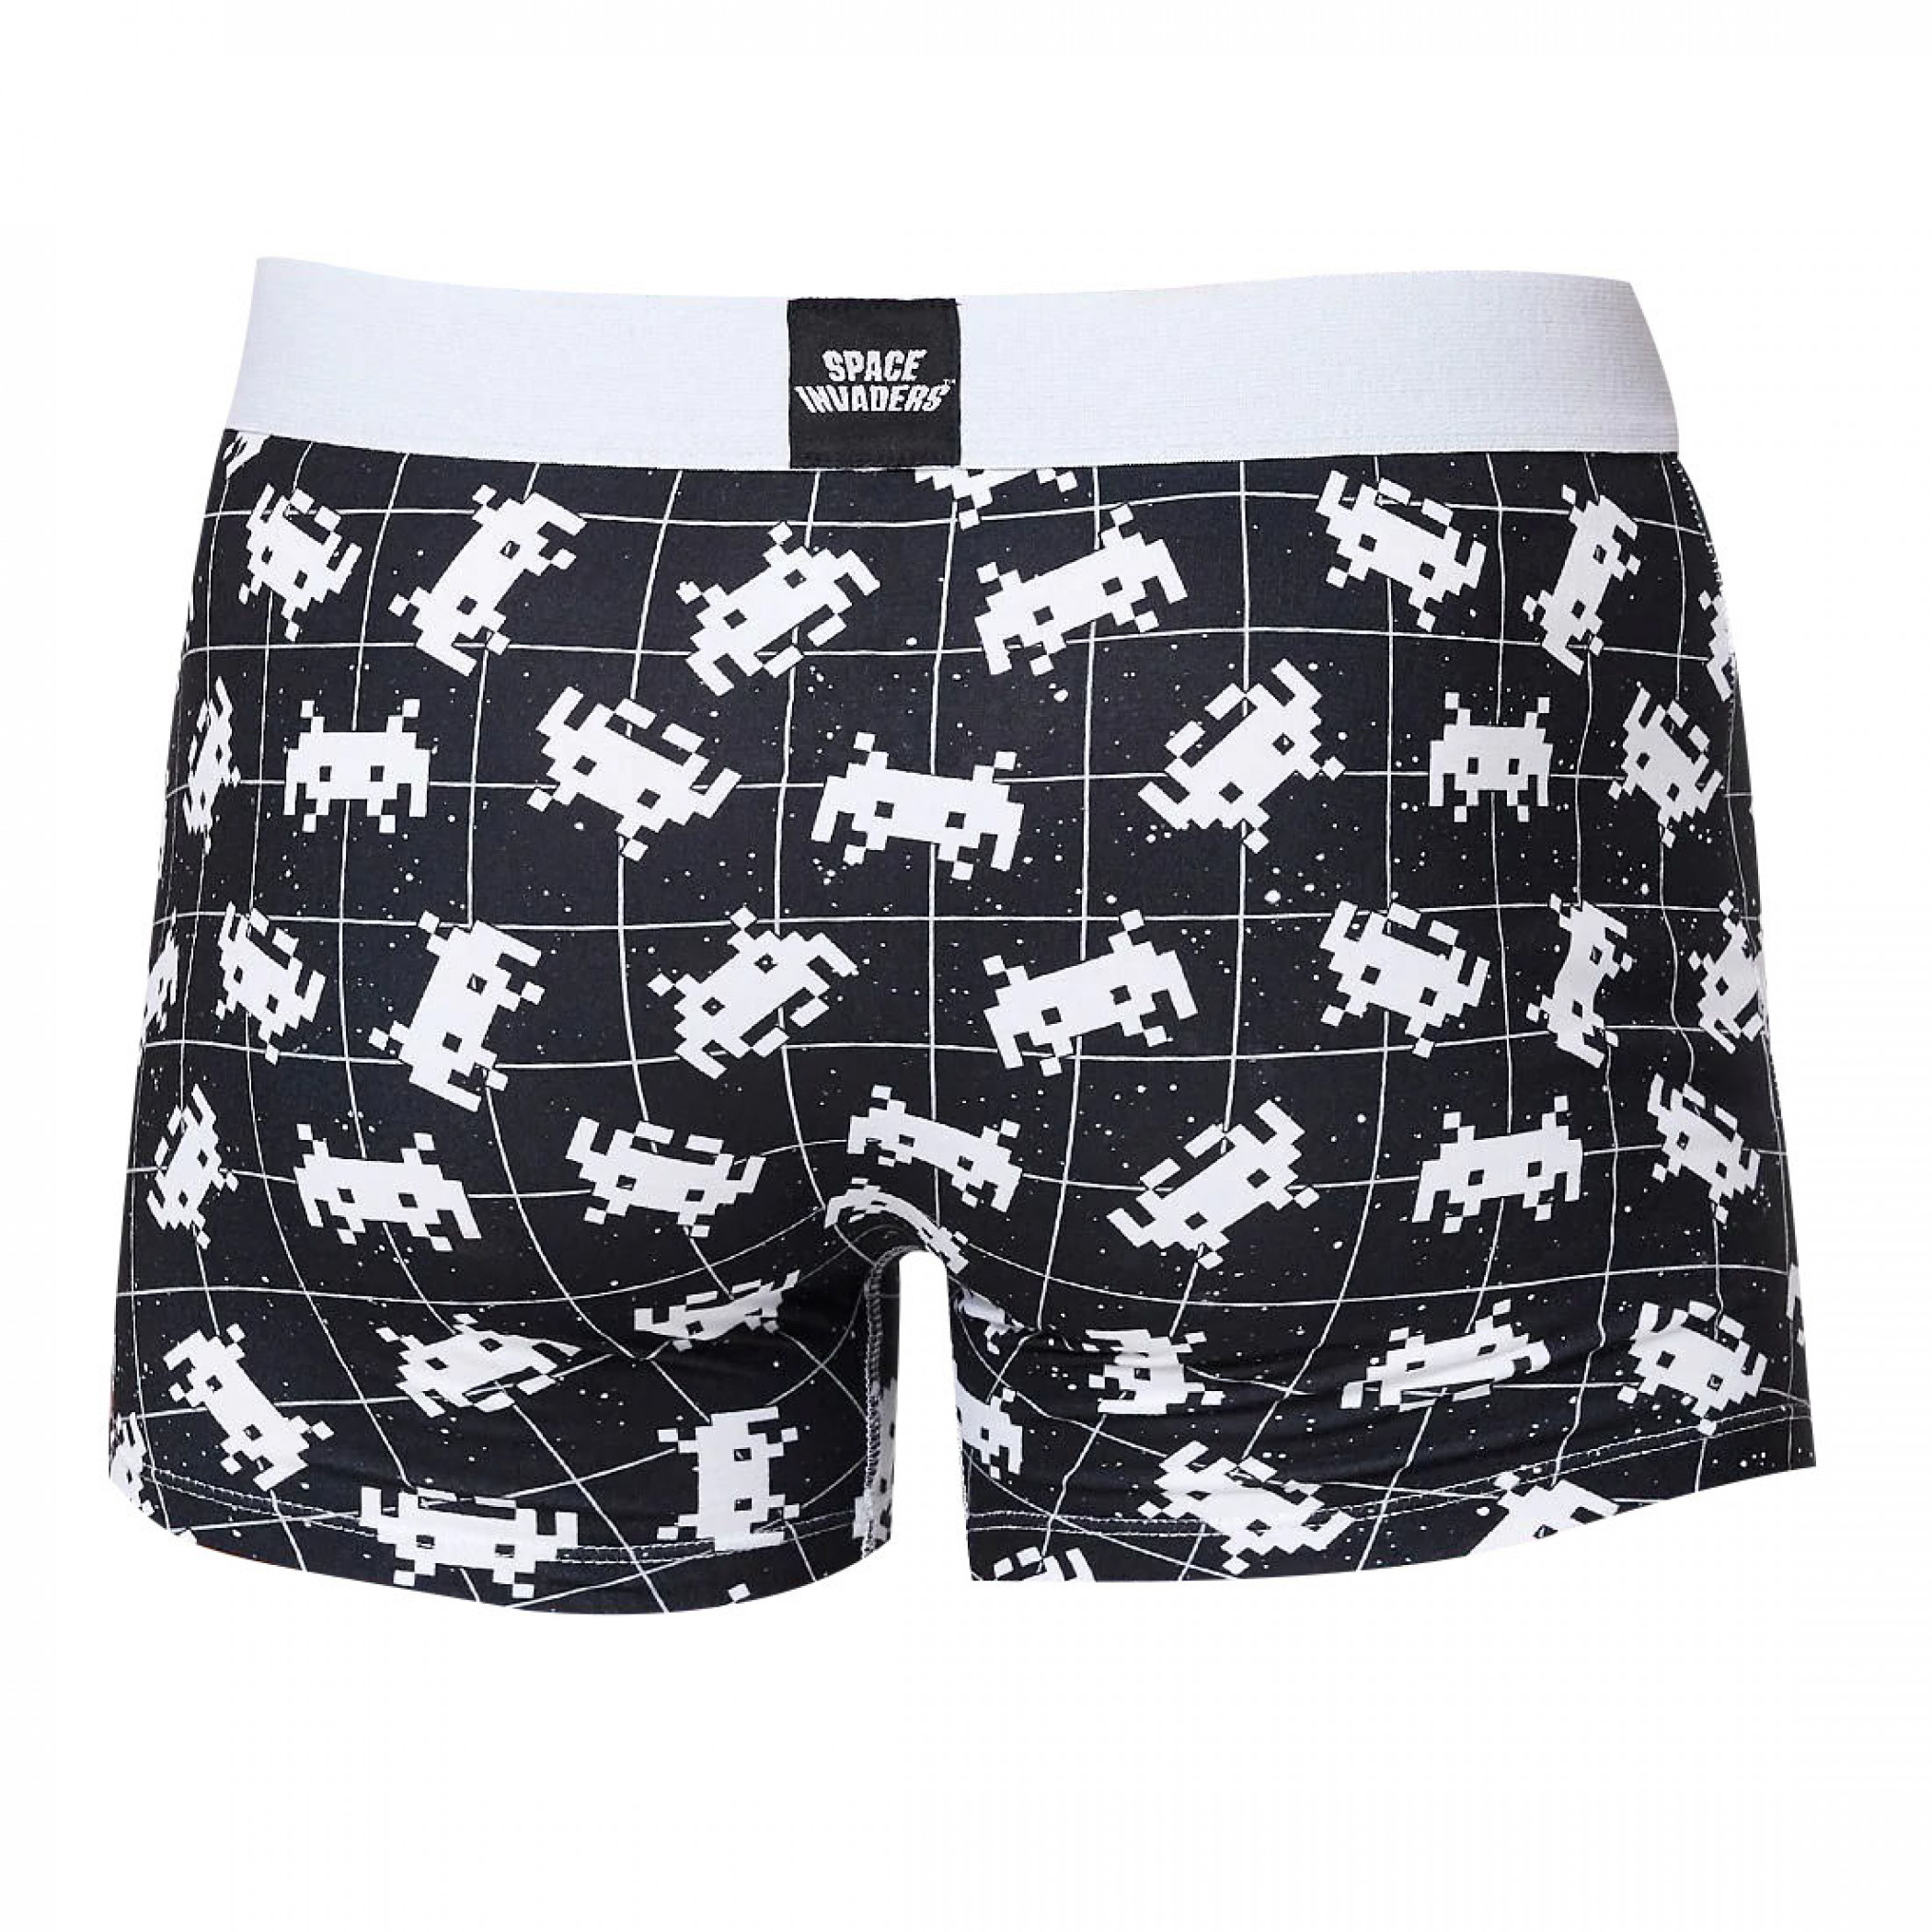 Space Invaders Boxer Briefs